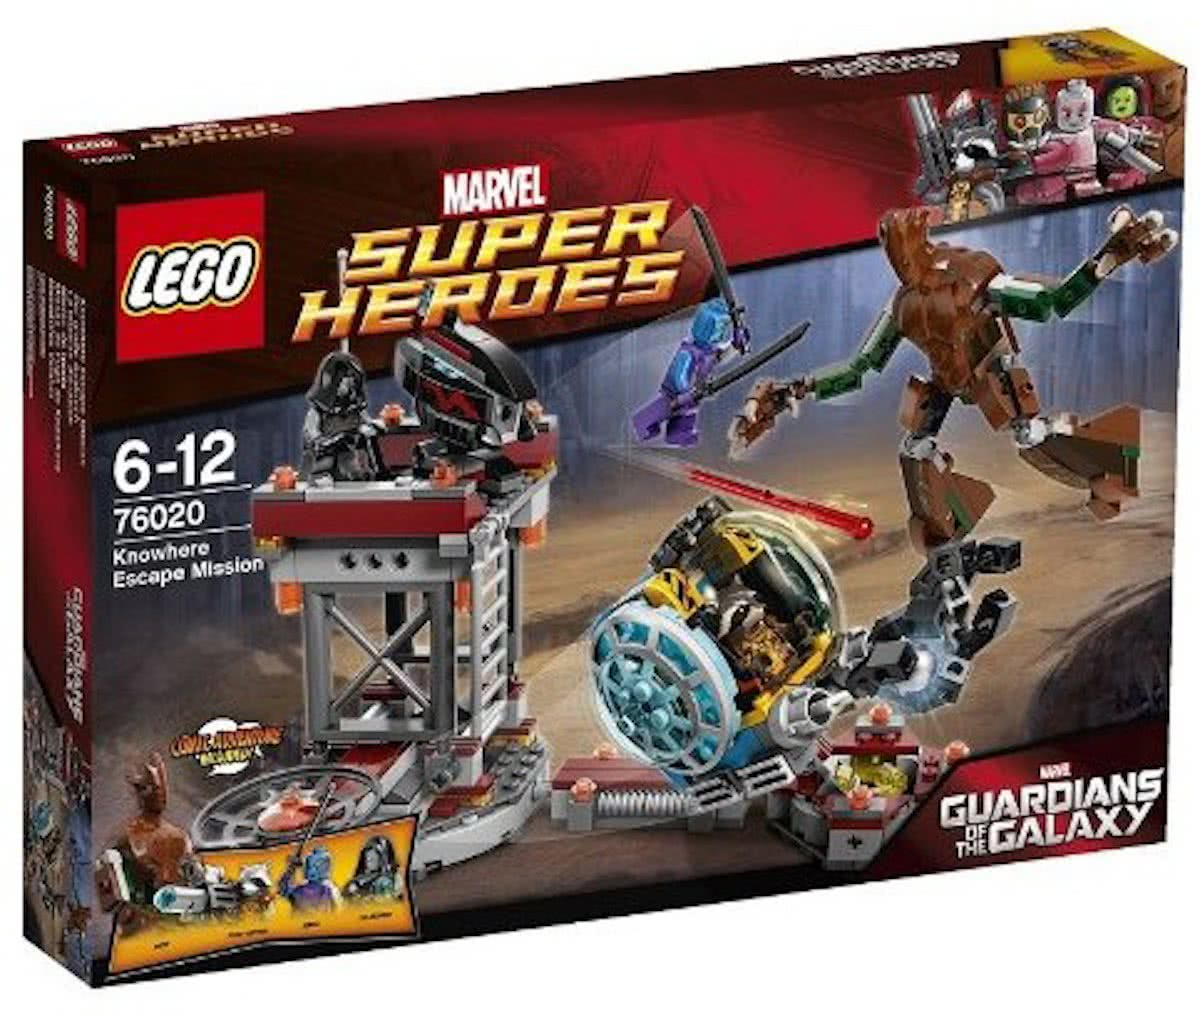 LEGO Super Heroes Knowhere Ontsnappingsmissie - 76020